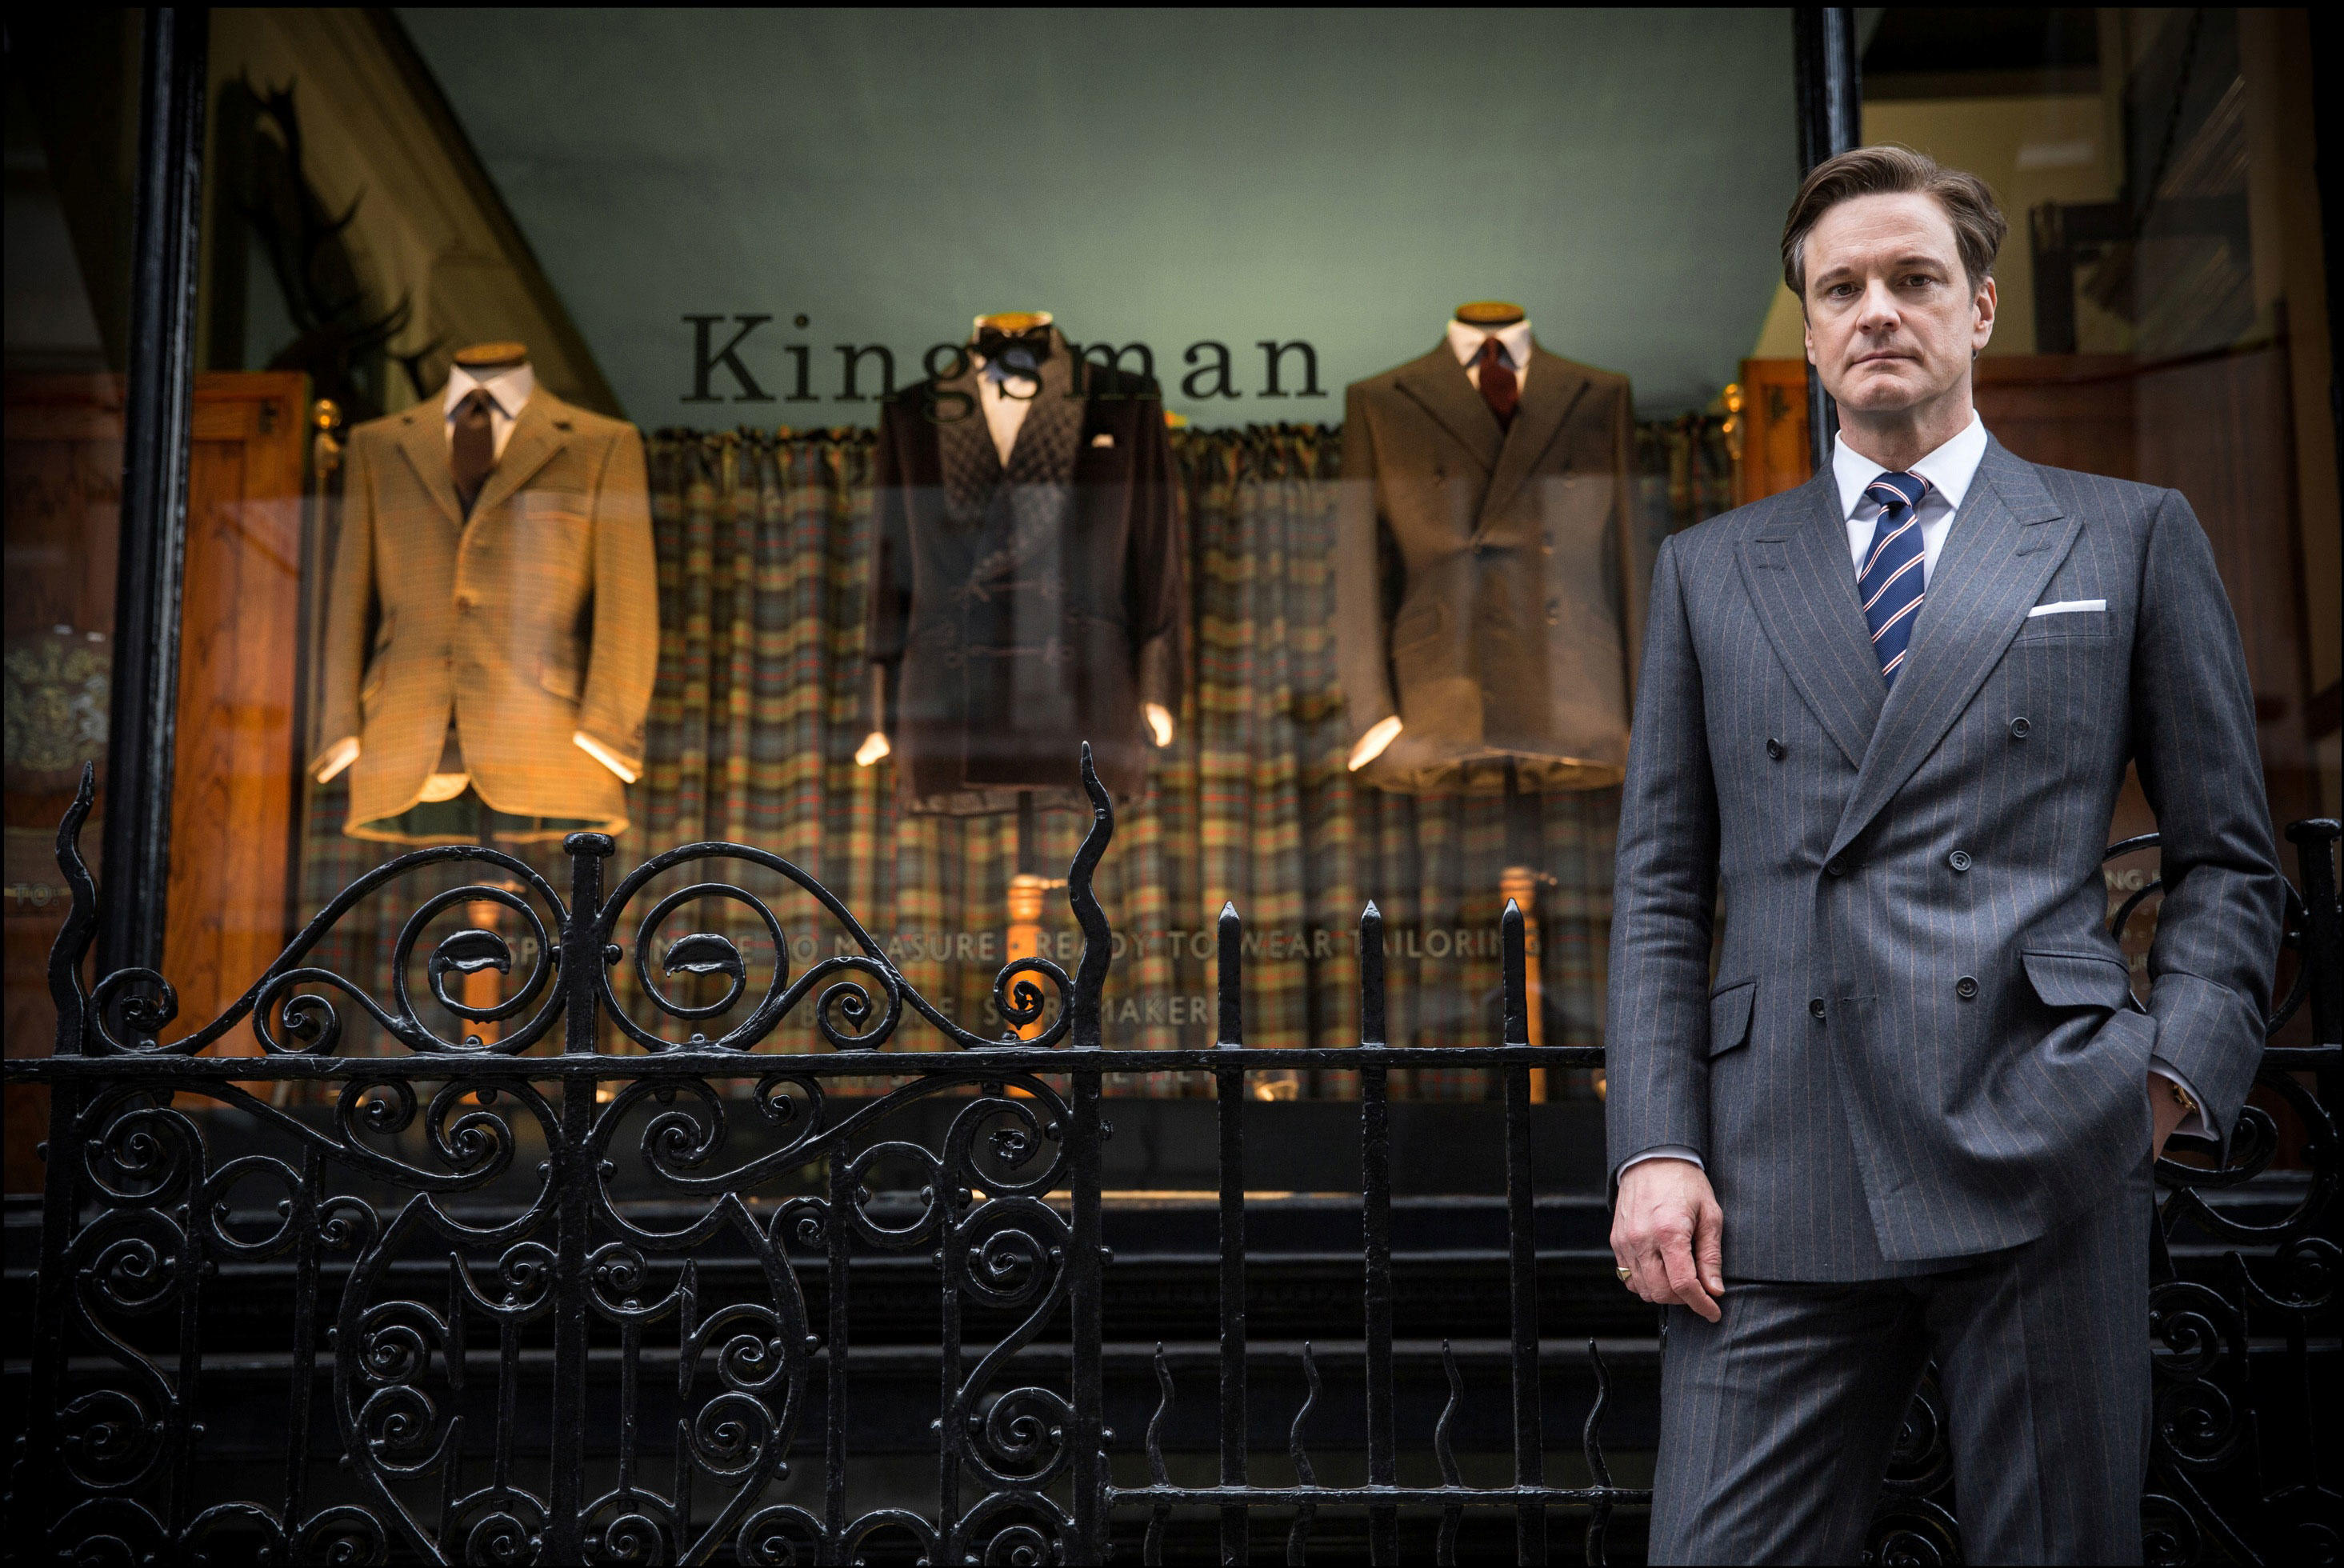 Check out the movie photos of 'Kingsman: The Secret Service'